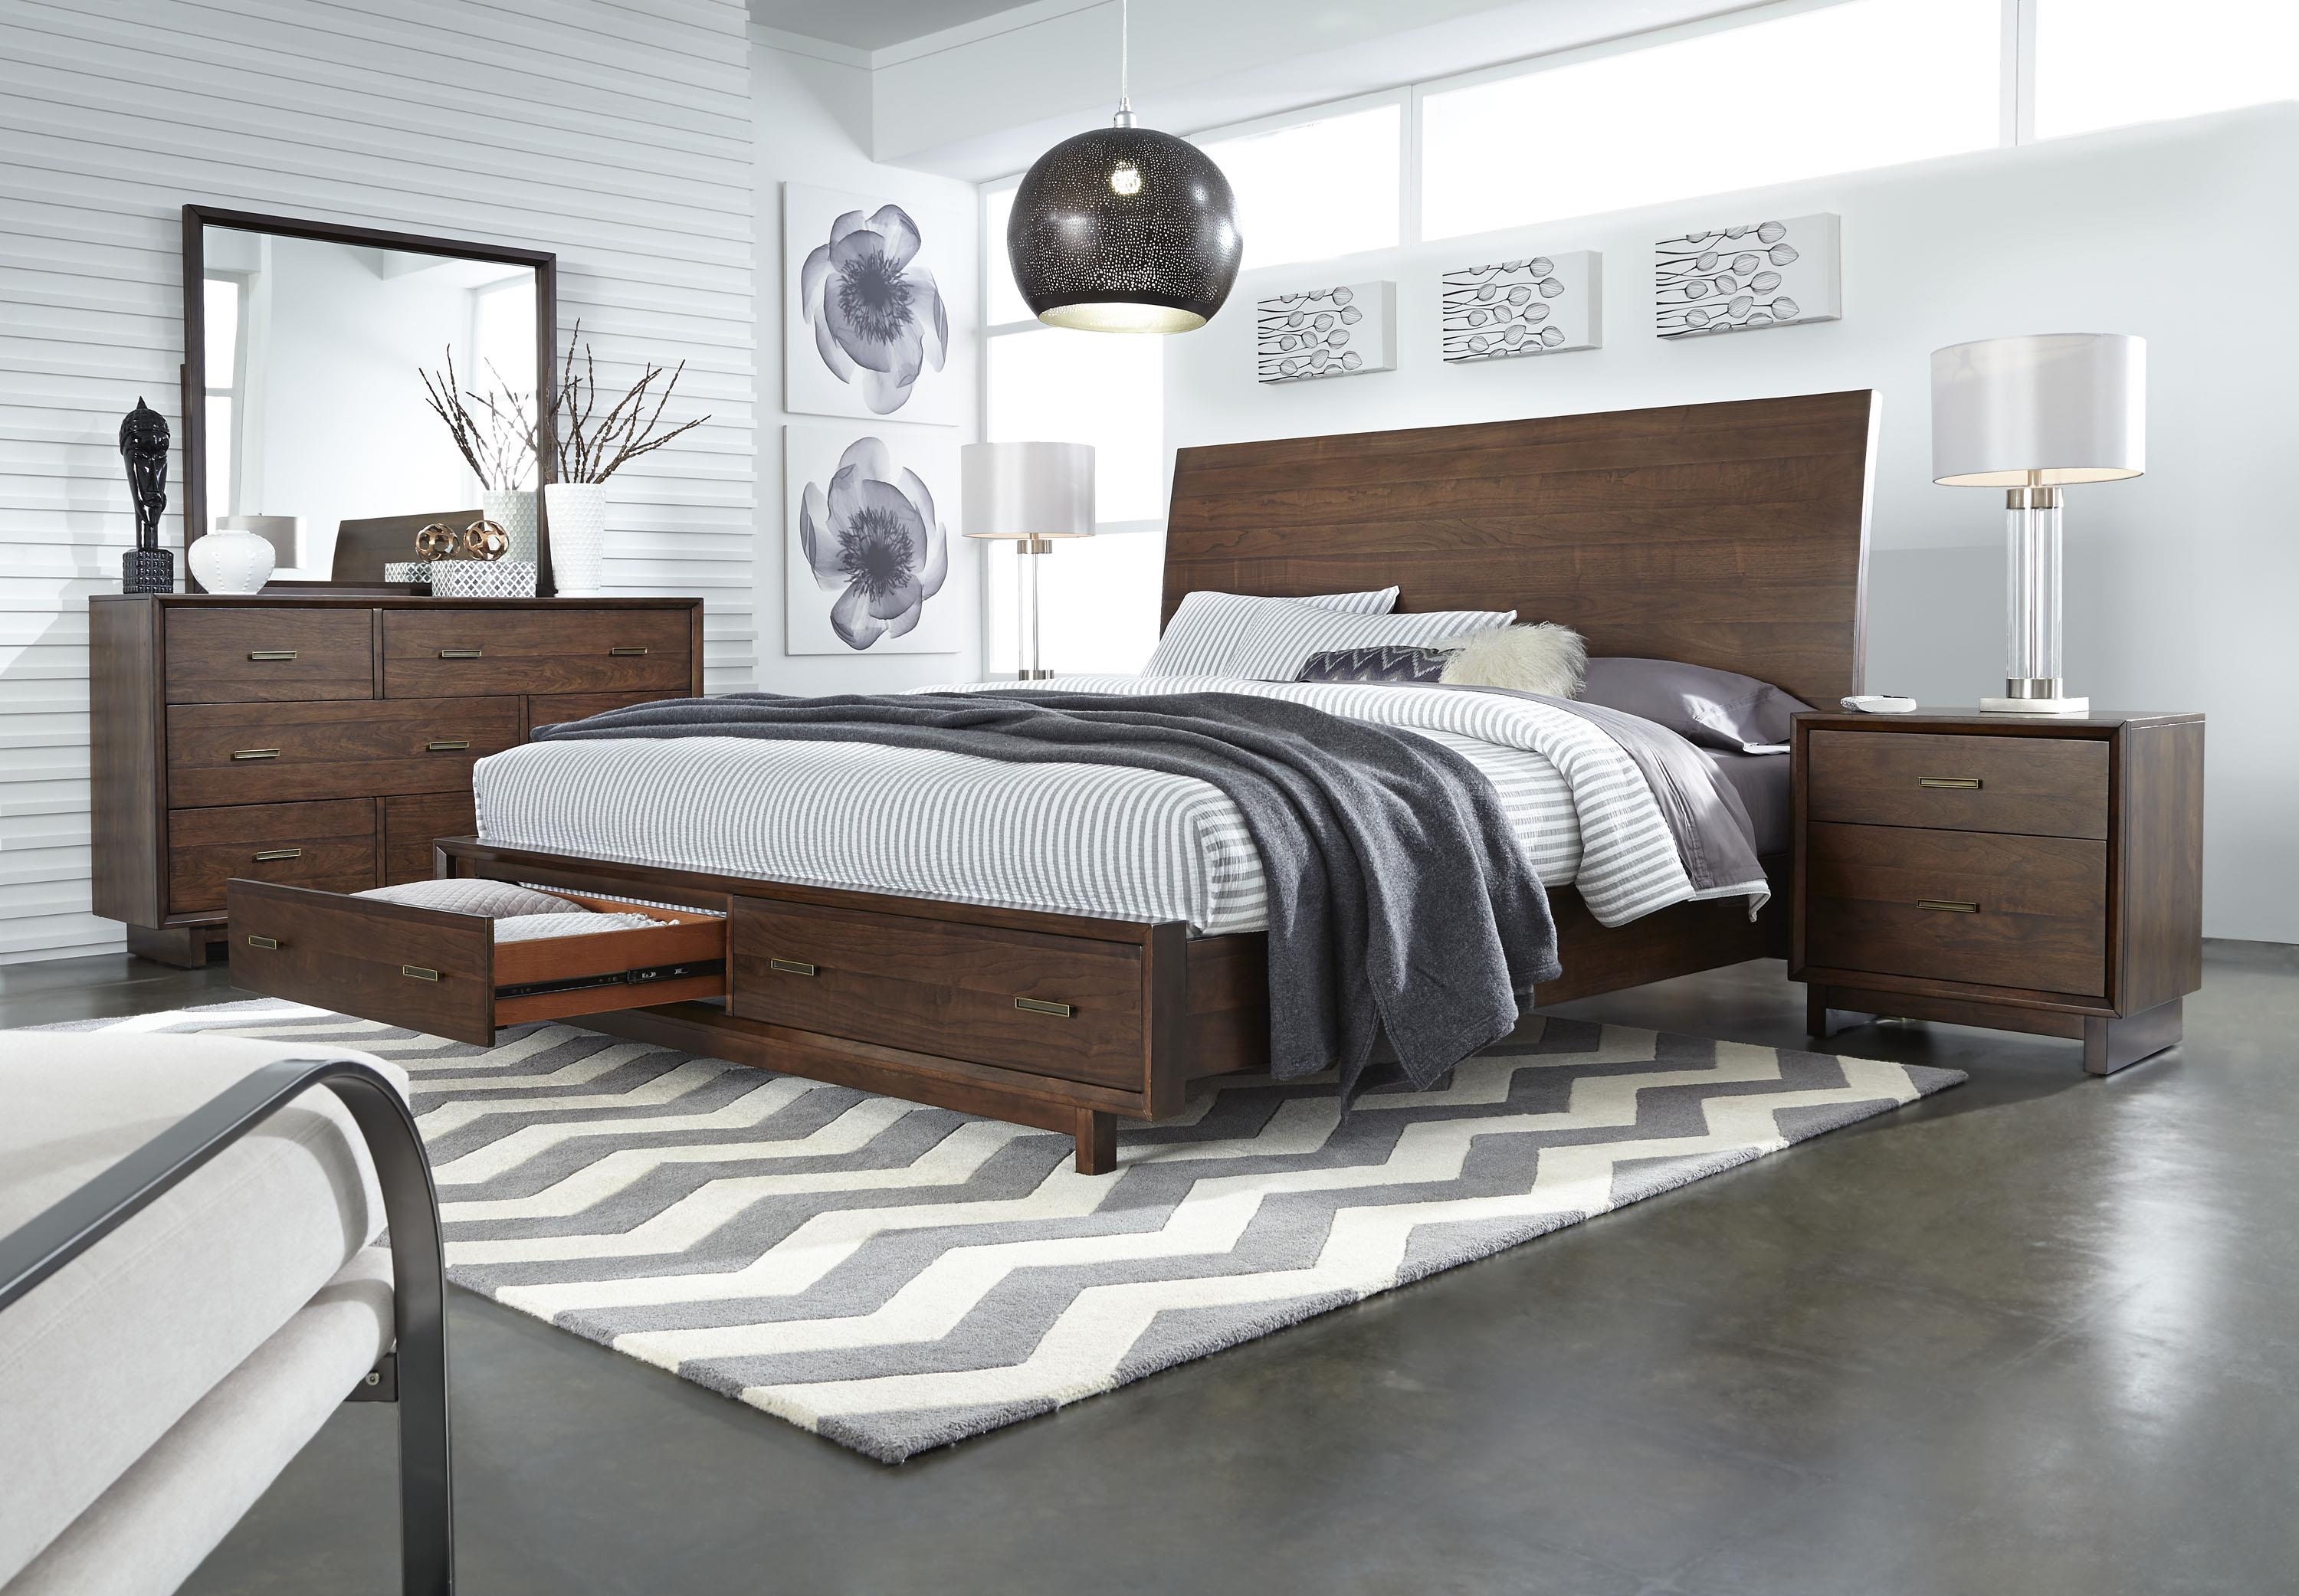 Aspenhome Walnut Heights King Bedroom Group 2 - Item Number: IWH K Bedroom Group 2